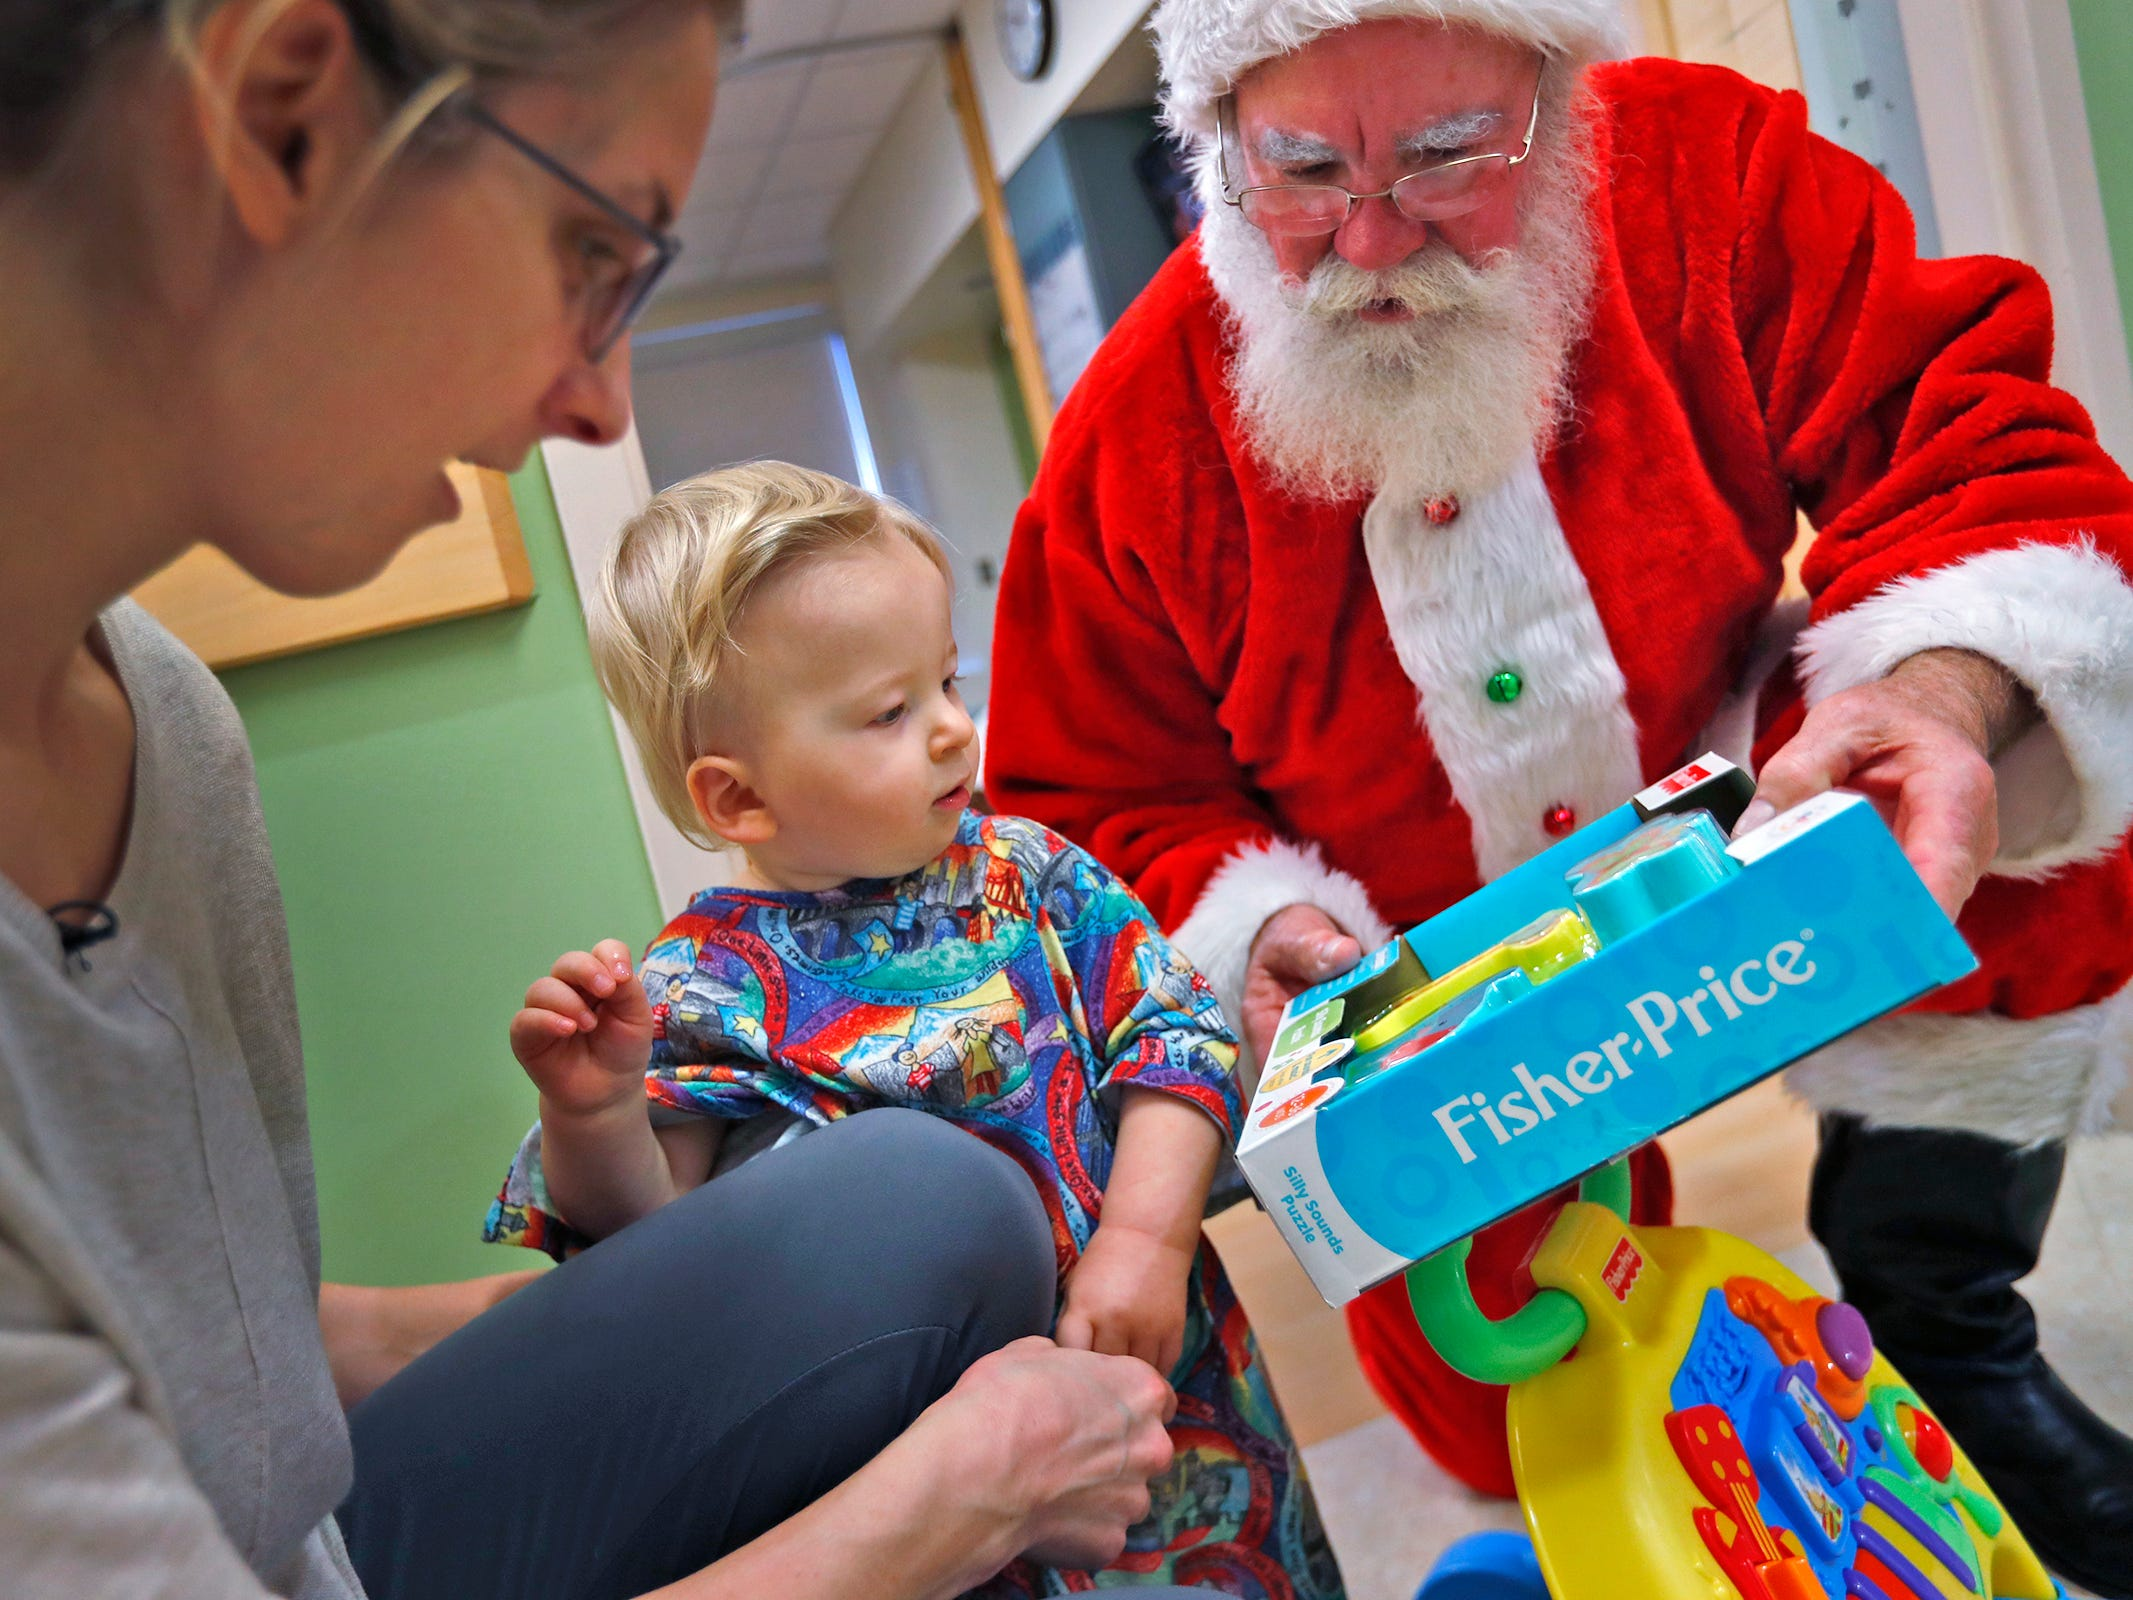 Finnick McCandless, center, sits with his mother, Celena McCandless, left, as they visit with Santa, also know as Bill Armstrong, during Santa's visit with kids at Riley Children's Health, Thursday, Dec. 13, 2018.